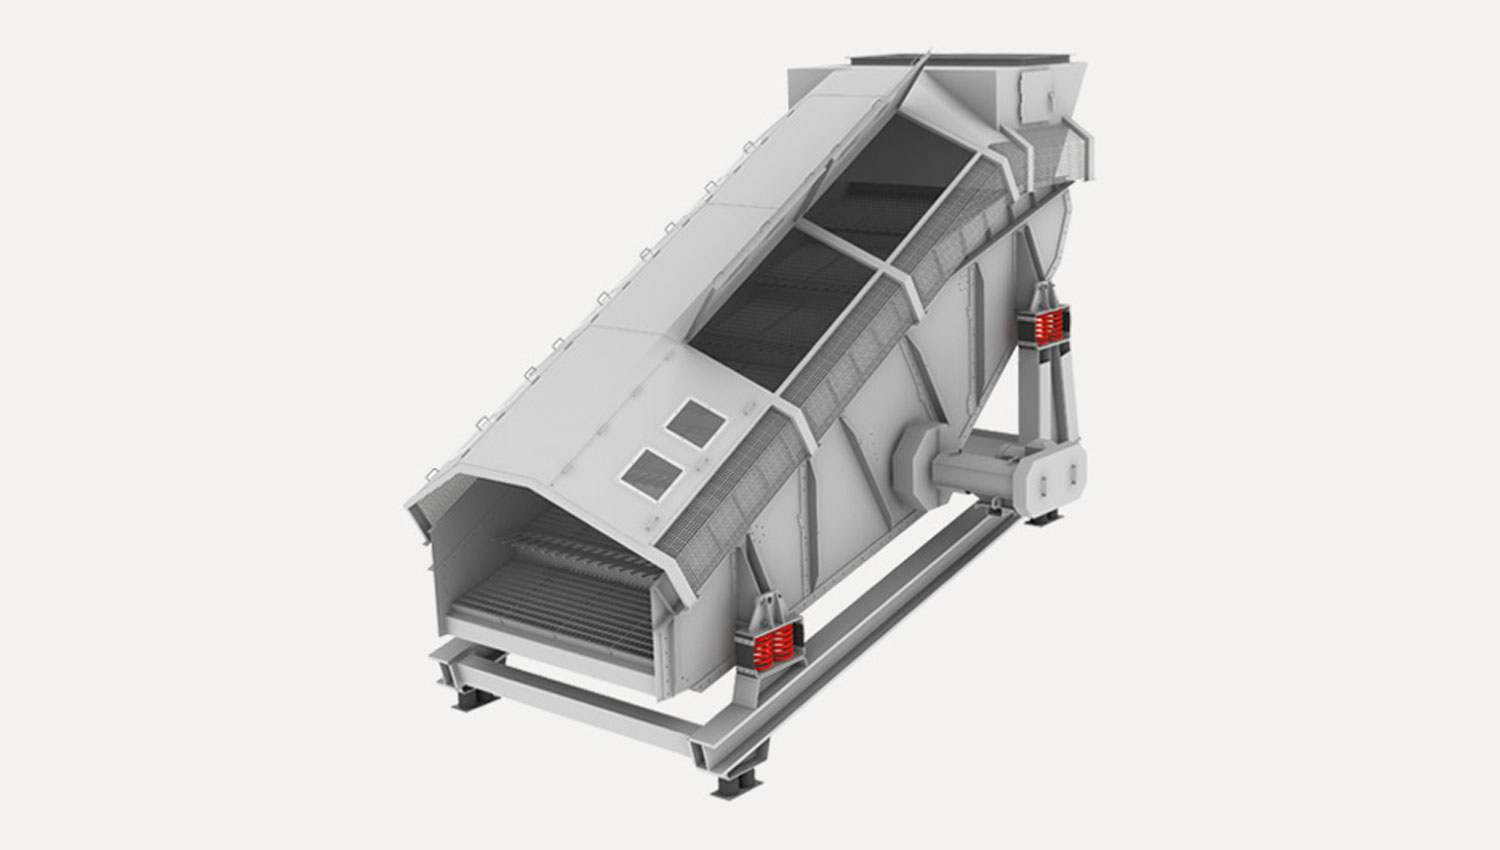 Waste screen for waste treatment and recycling